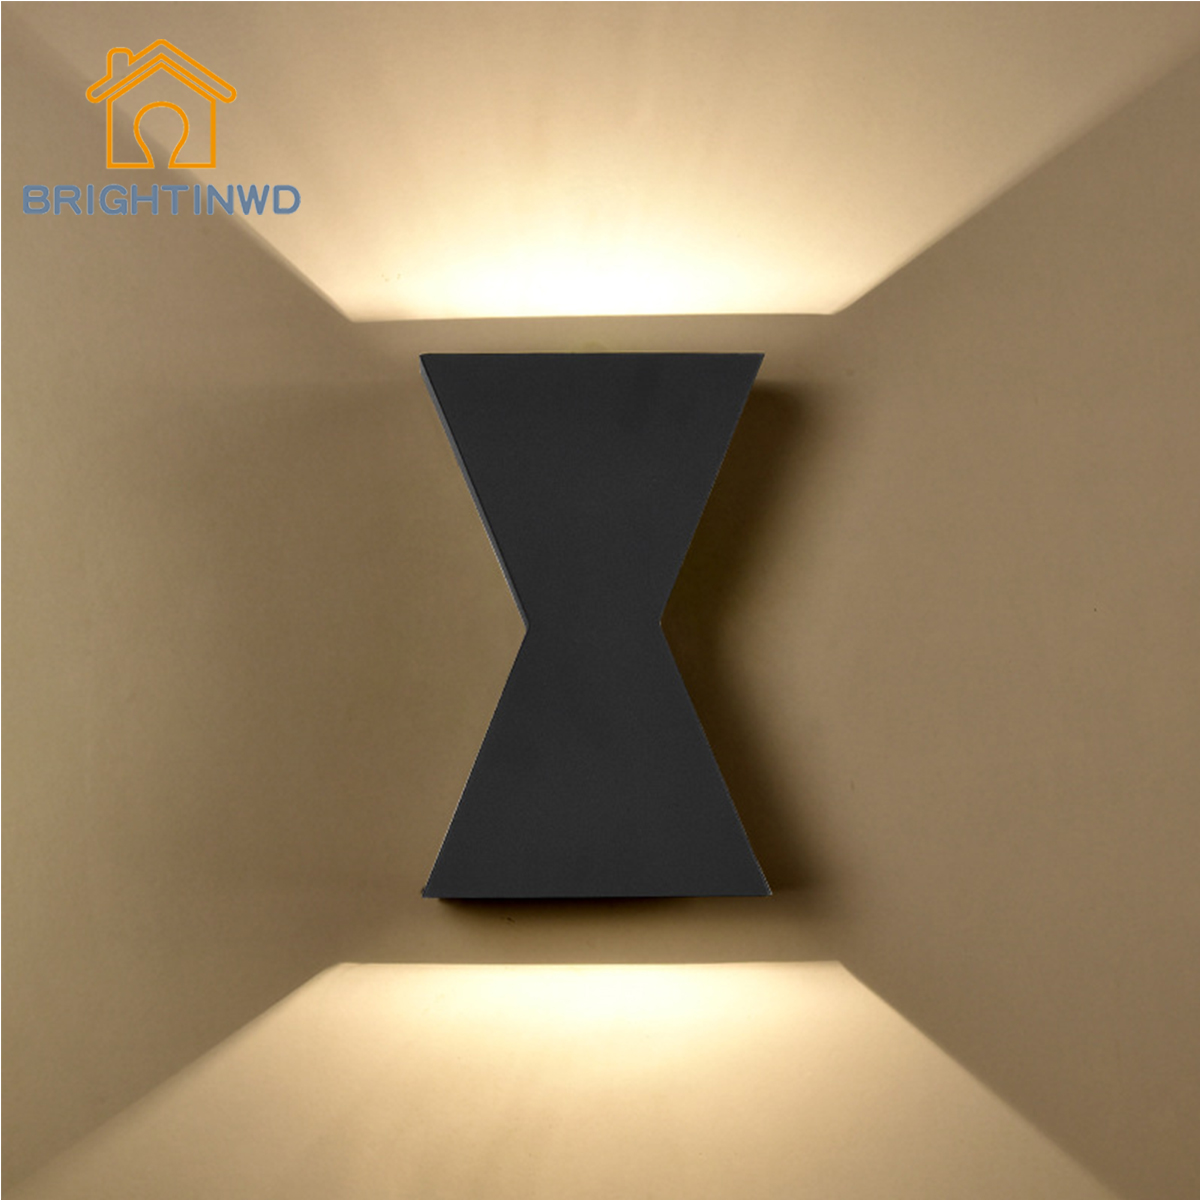 BRIGHTINWD LED Wall Lamp Living Room Bedroom Study Restaurant Background Personality Creative Corridor Aisle Staircase Lamps modern fashion creative k9 crystal wifi design led 9w wall lamp for living room bedroom aisle corridor bathroom 80 265v 2063